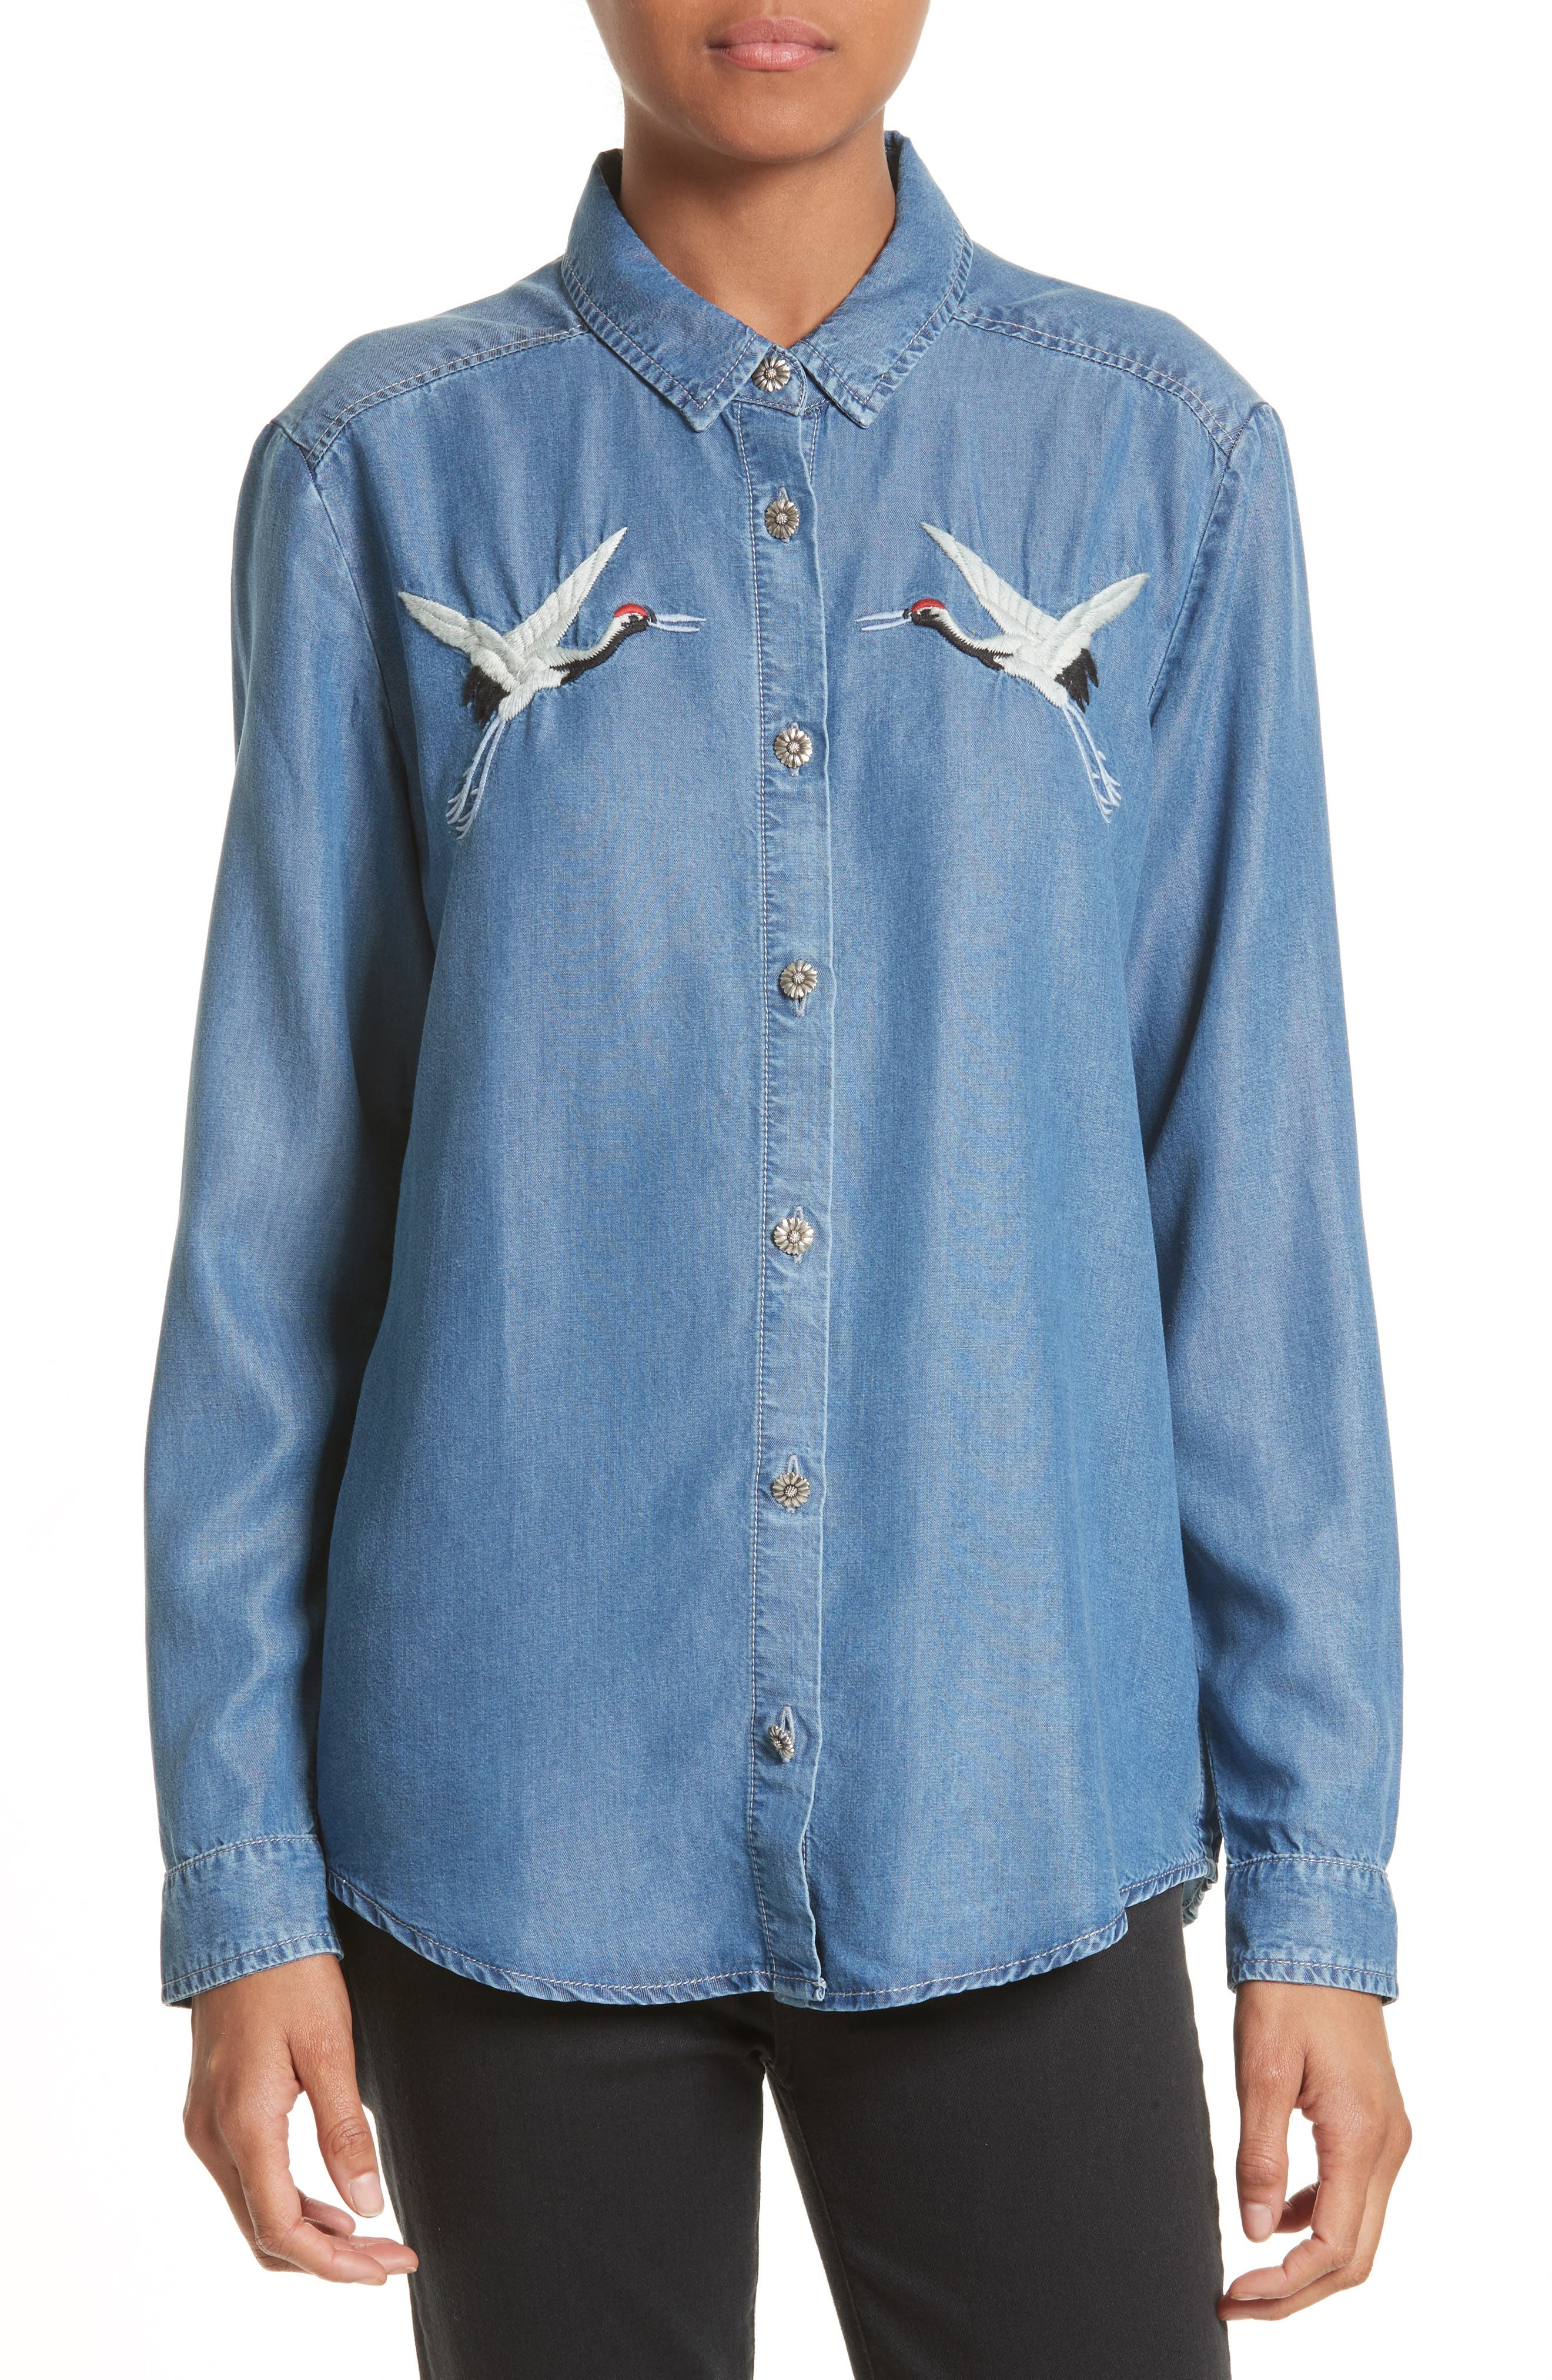 Main Image - The Kooples Embroidered Denim Shirt